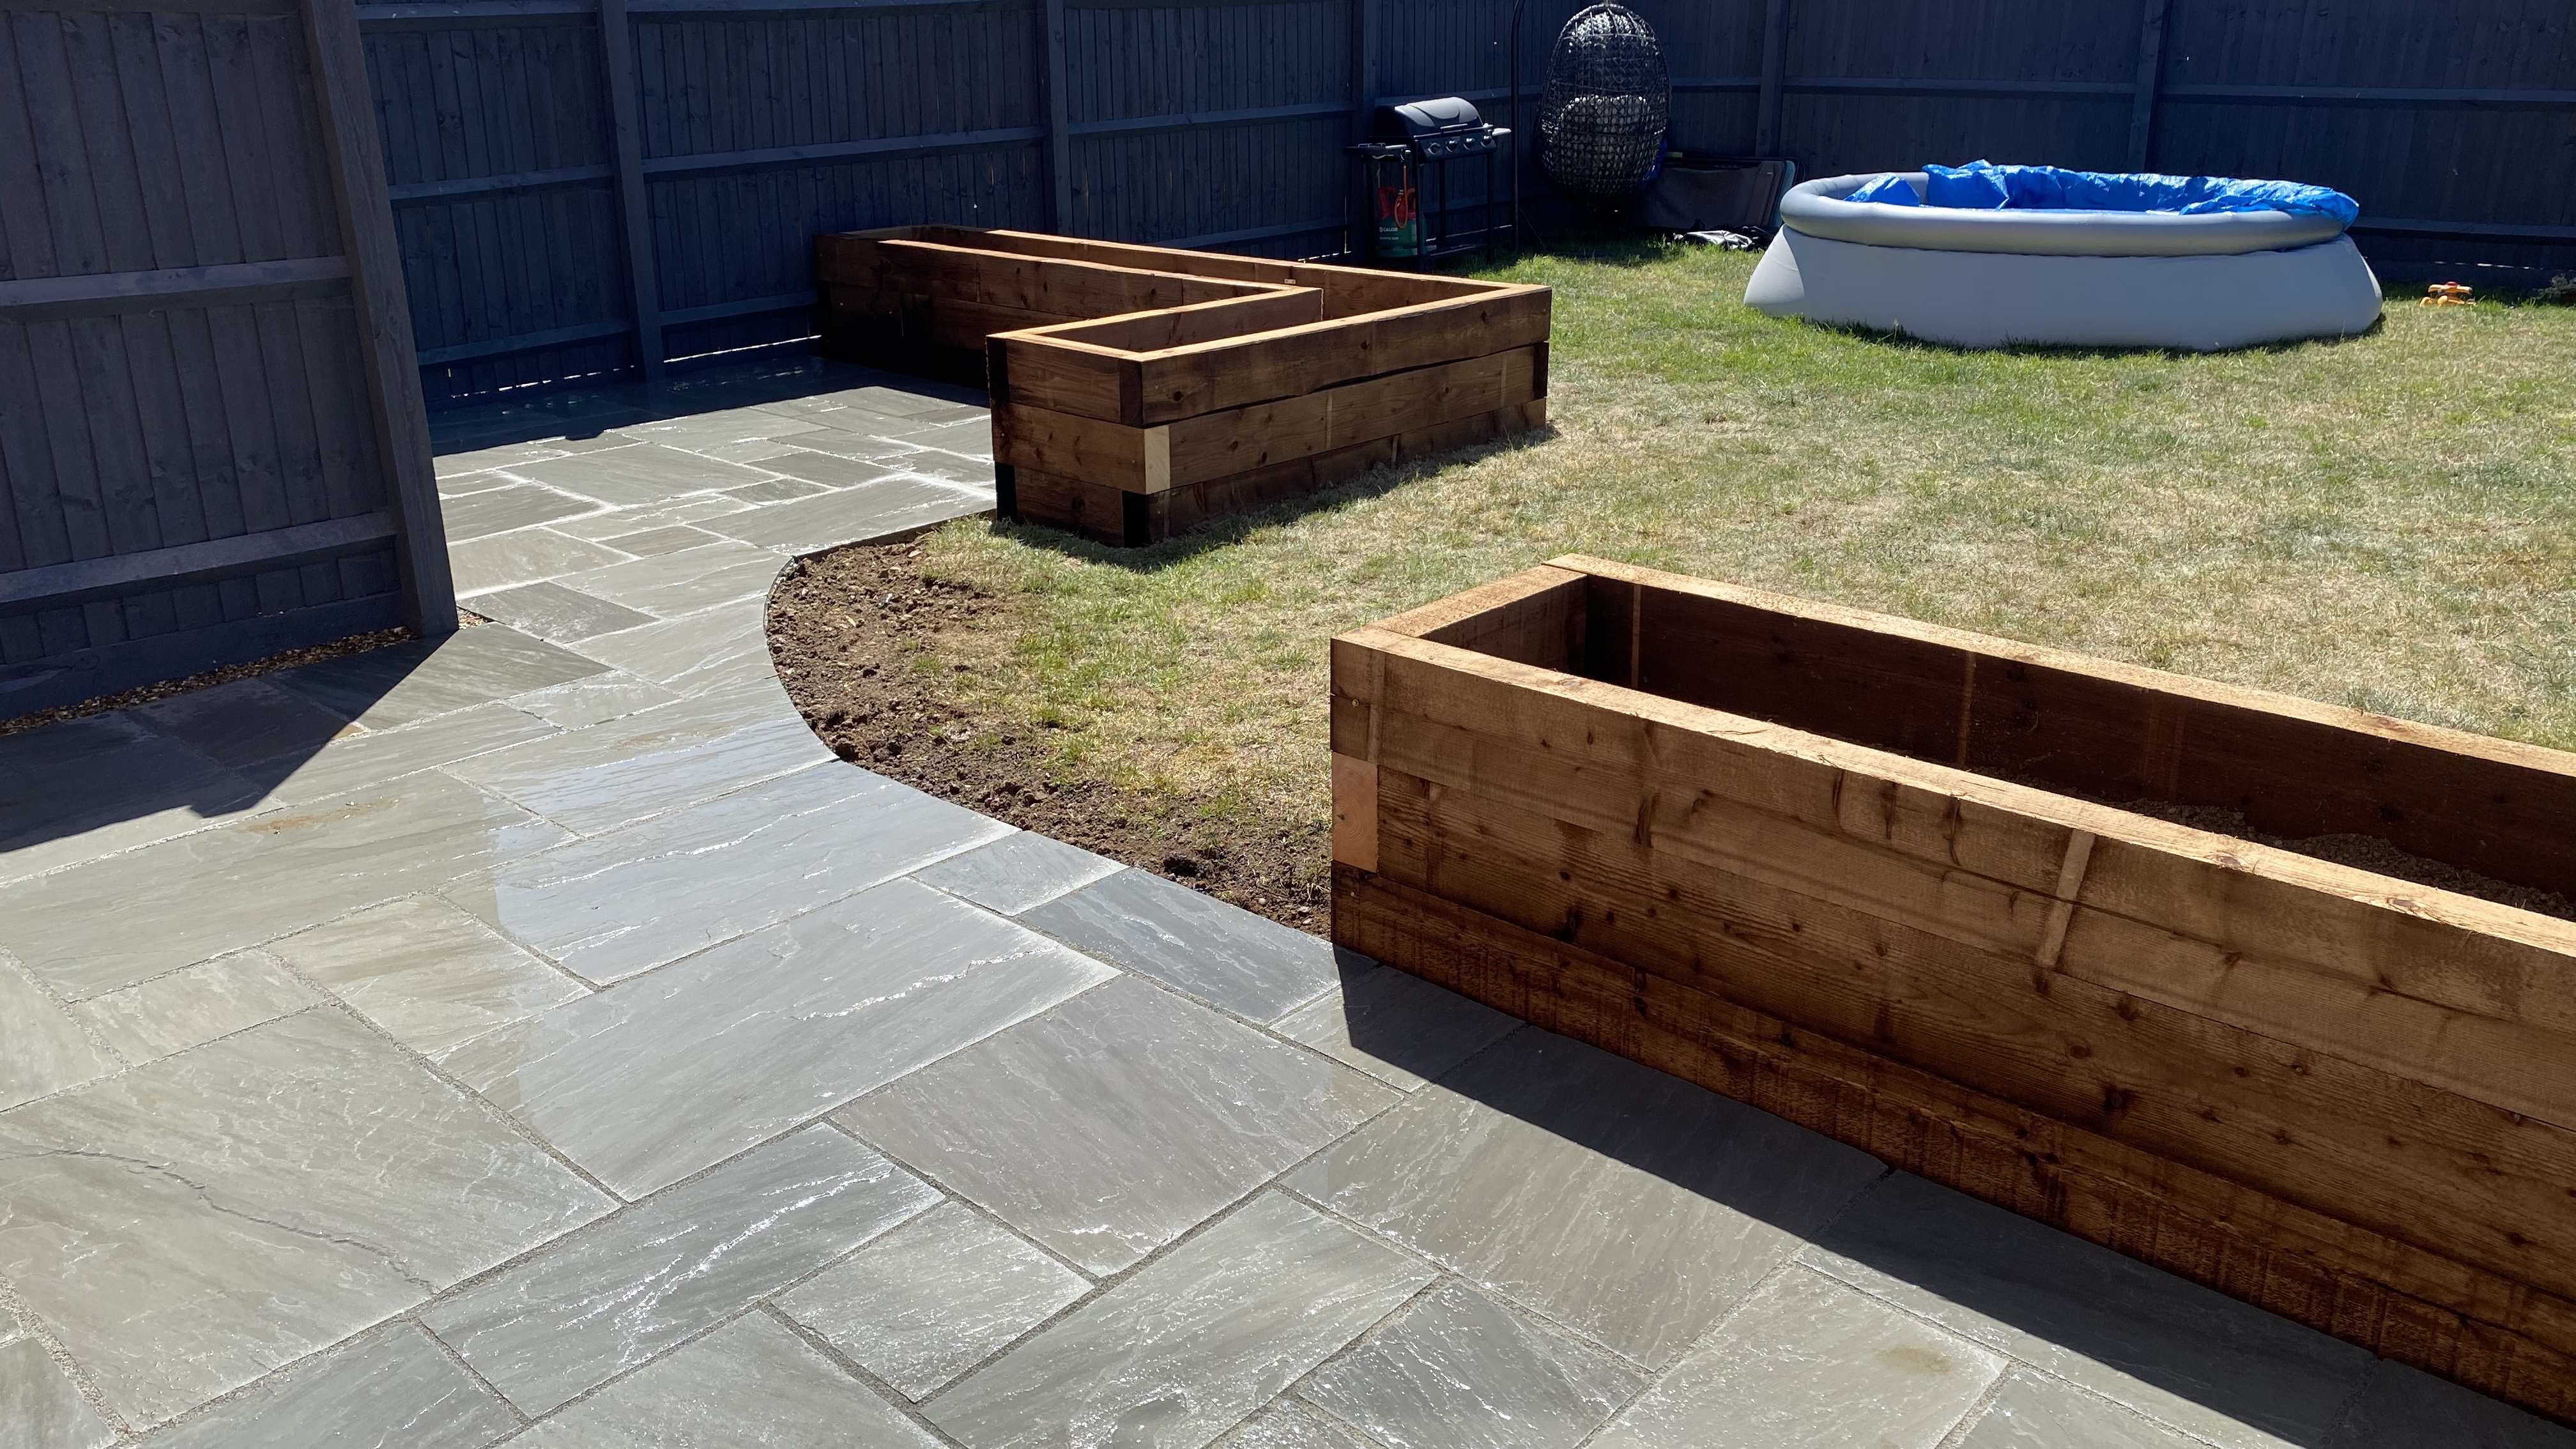 New patio and flower beds.